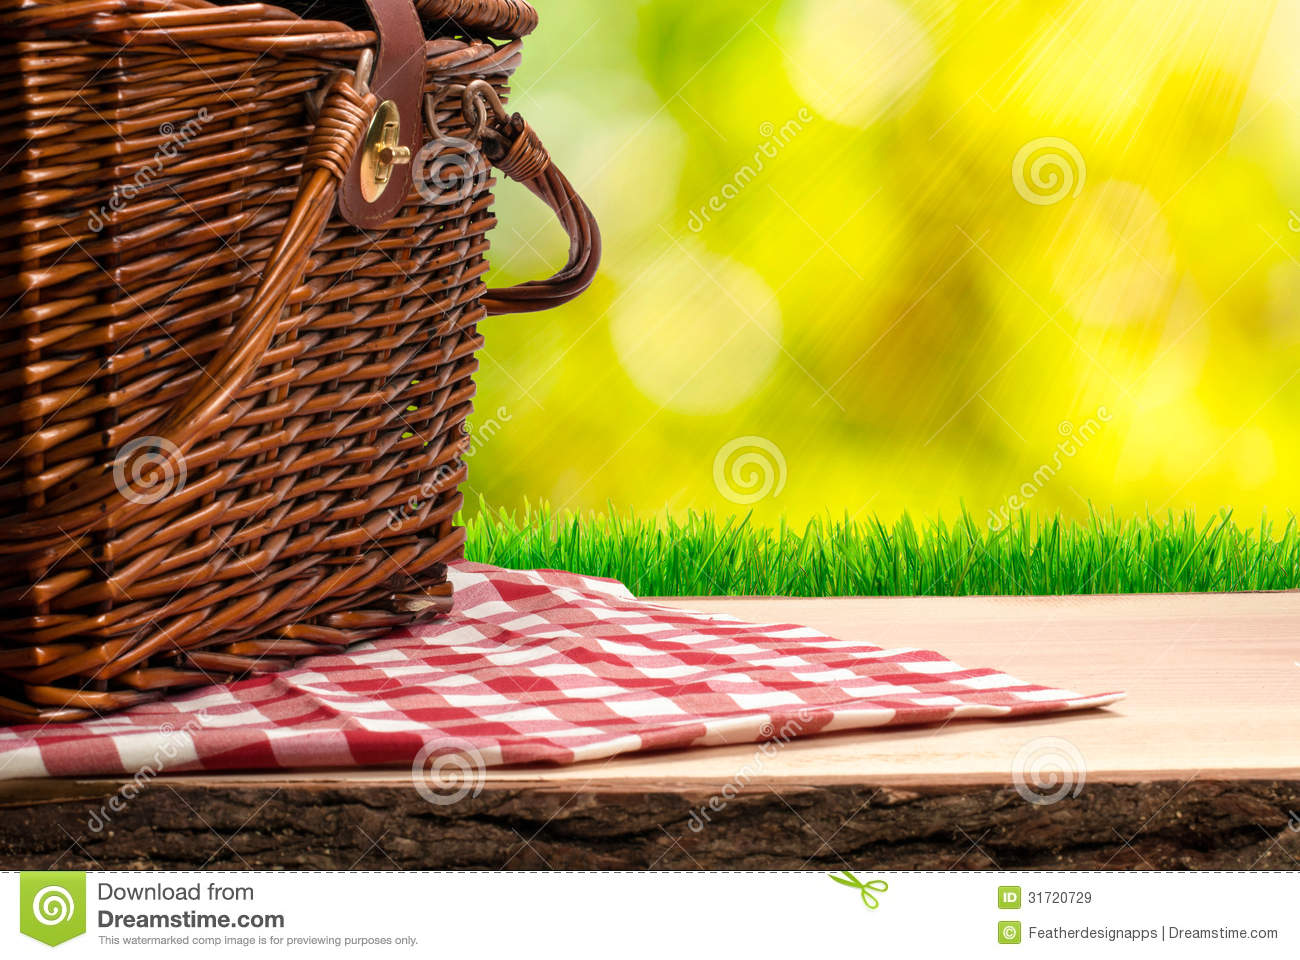 Picnic Table Background picnic basket on the table royalty free stock images - image: 31720729